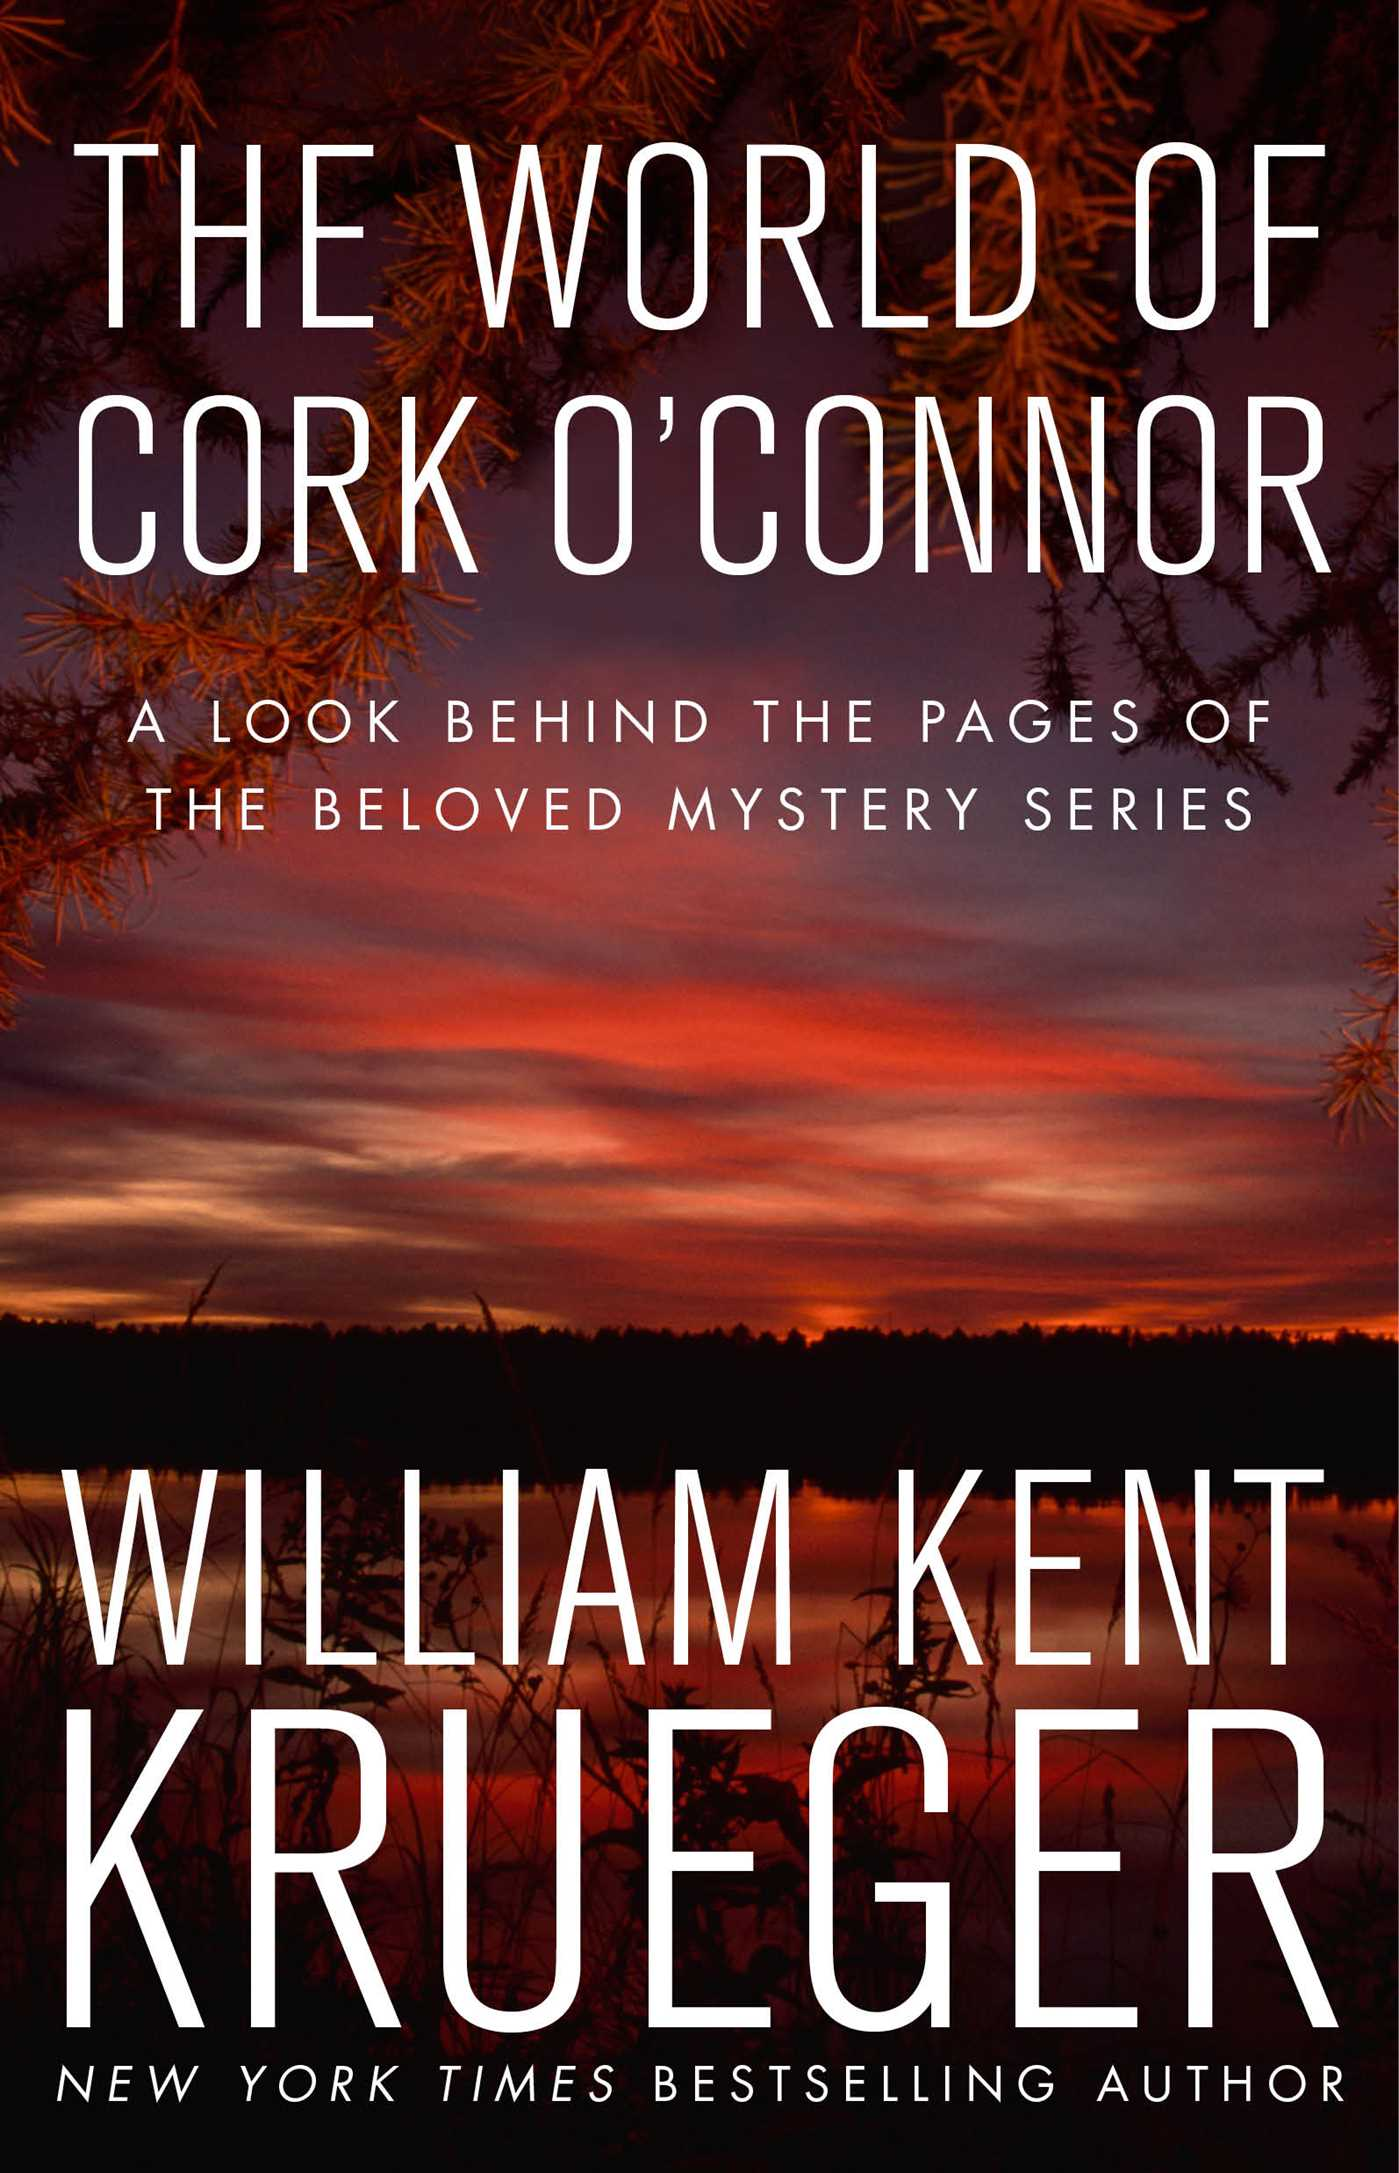 The world of cork oconnor ebook by william kent krueger a look behind the pages of the beloved mystery series fandeluxe Epub